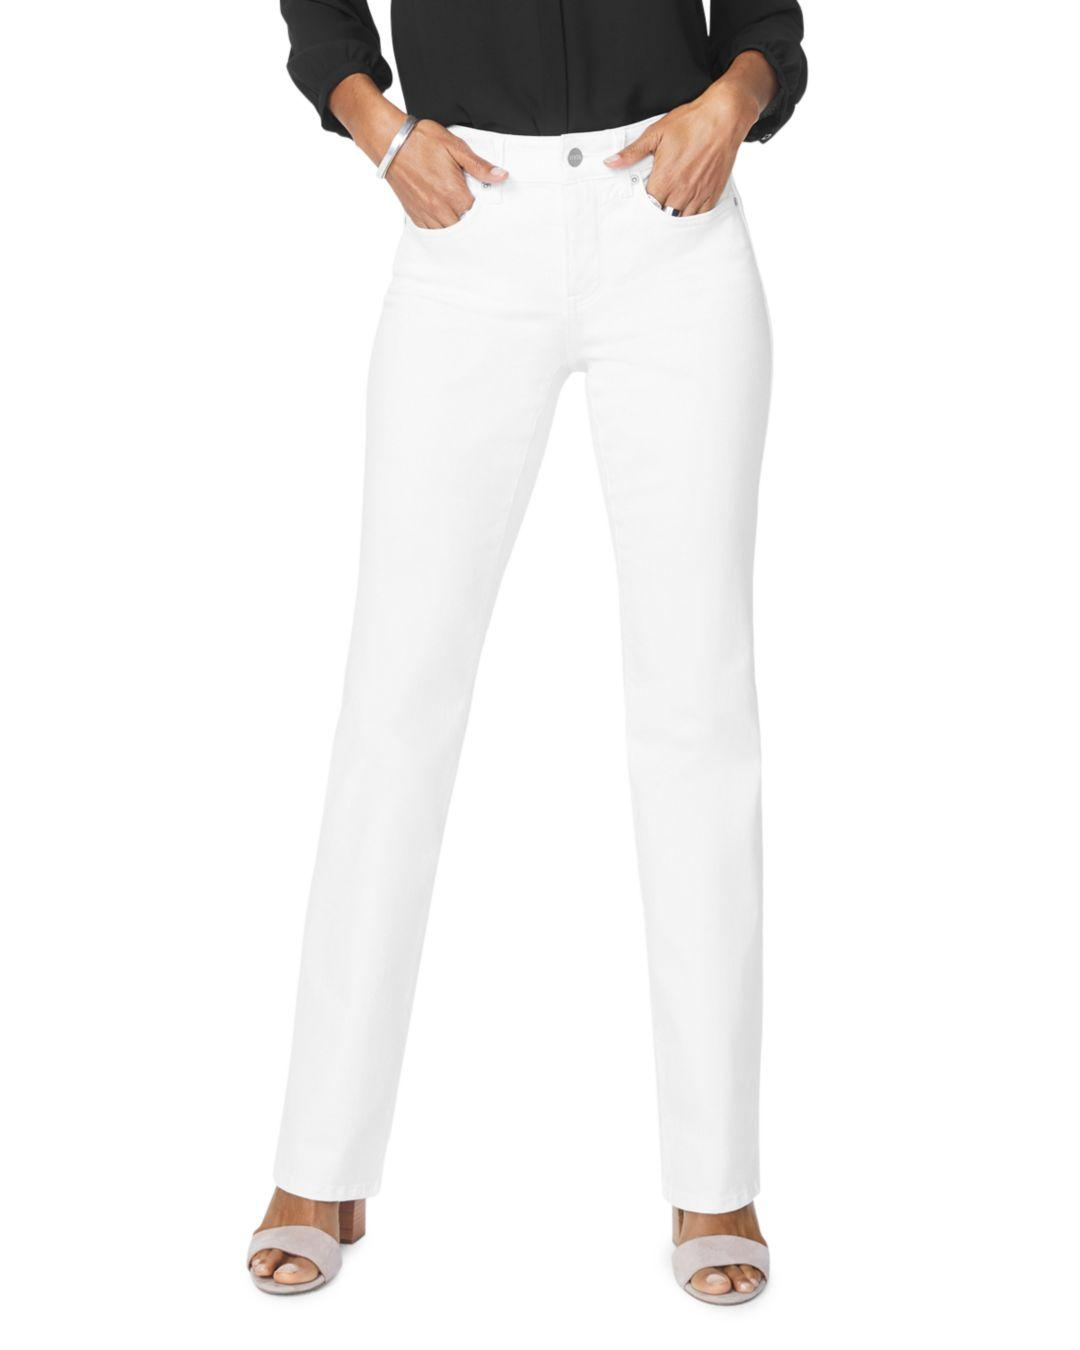 a02413aa8bd39 Lyst - Nydj Petites Barbara Bootcut Jeans In Optic White in White